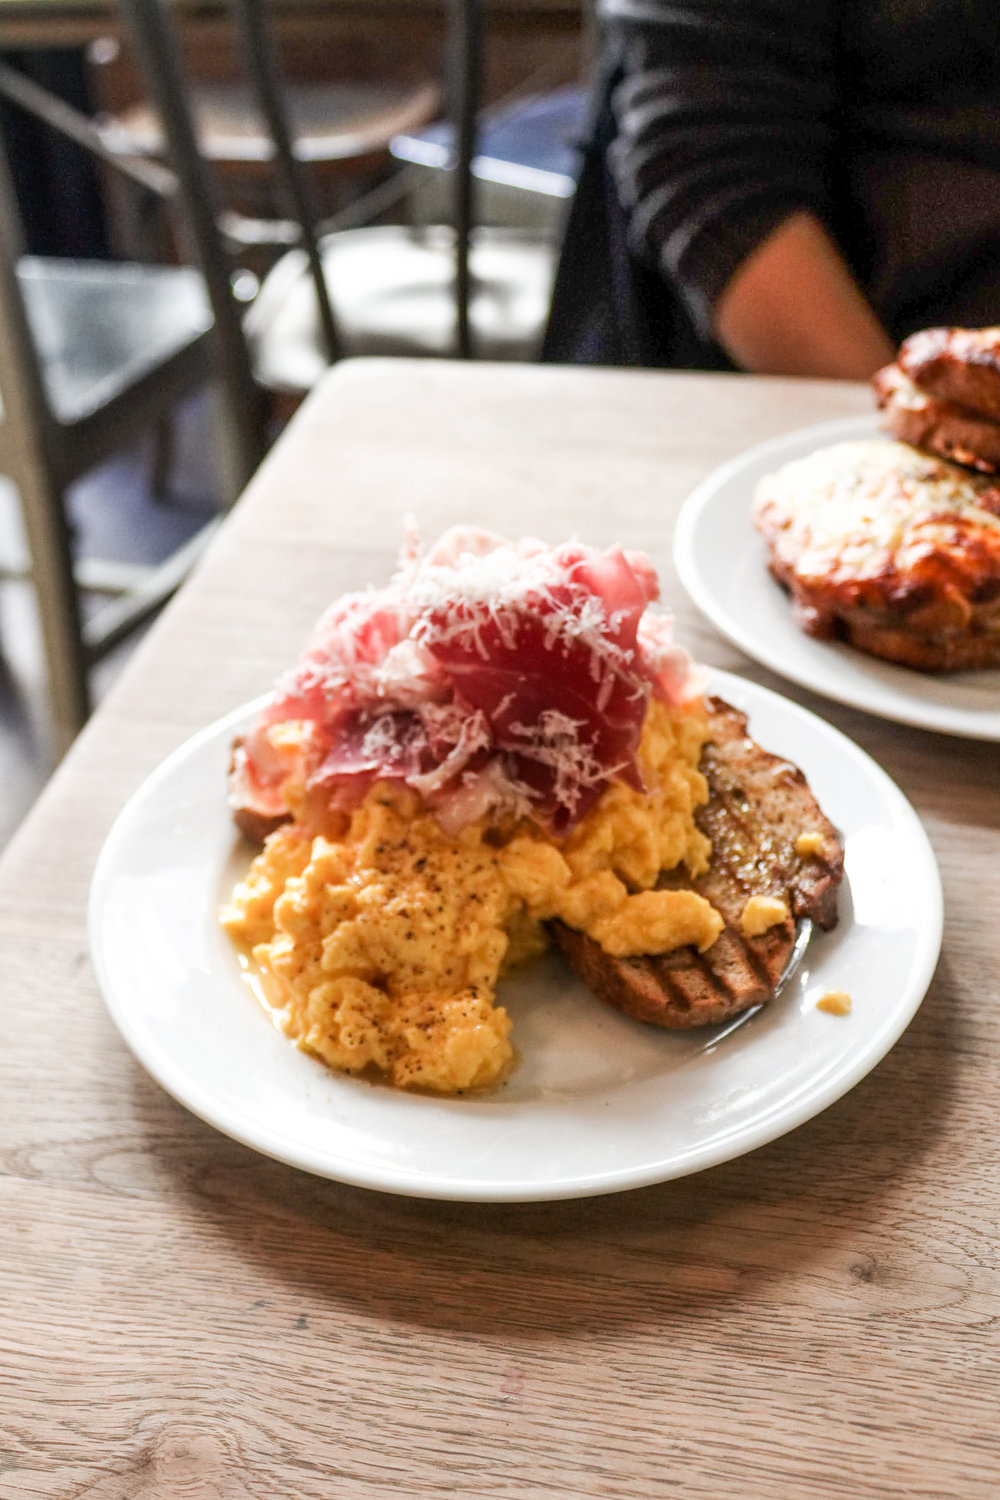 The soft scrambled eggs with proscuitto at Buvette  Below, right: caneles from Patisserie Gilles Marchal